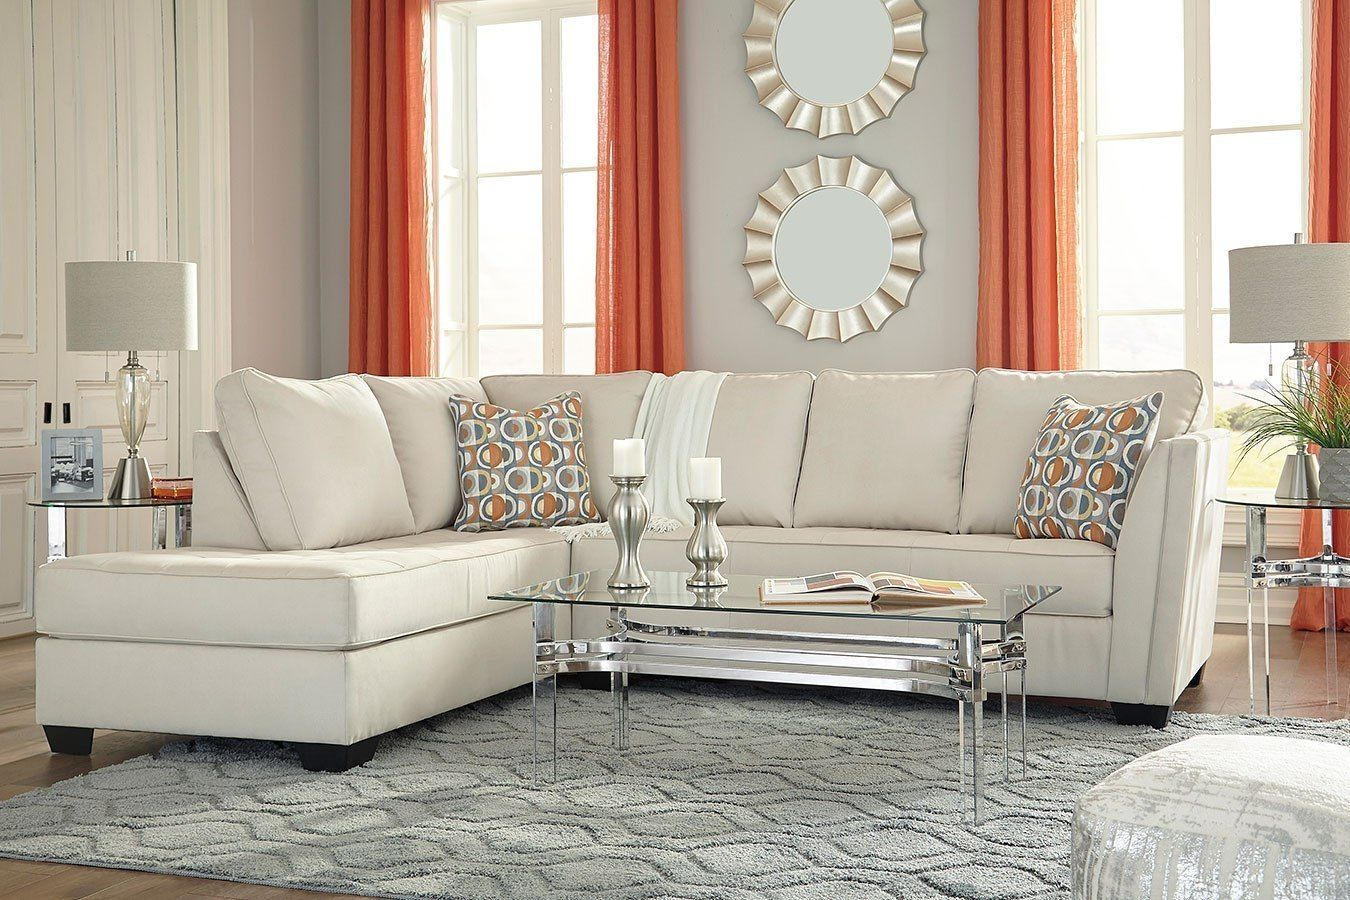 The Filone Living Room Collection By Signature Design Features Contemporary Style A Value City Furniture Sectional Sofa With Chaise Contemporary Sectional Sofa